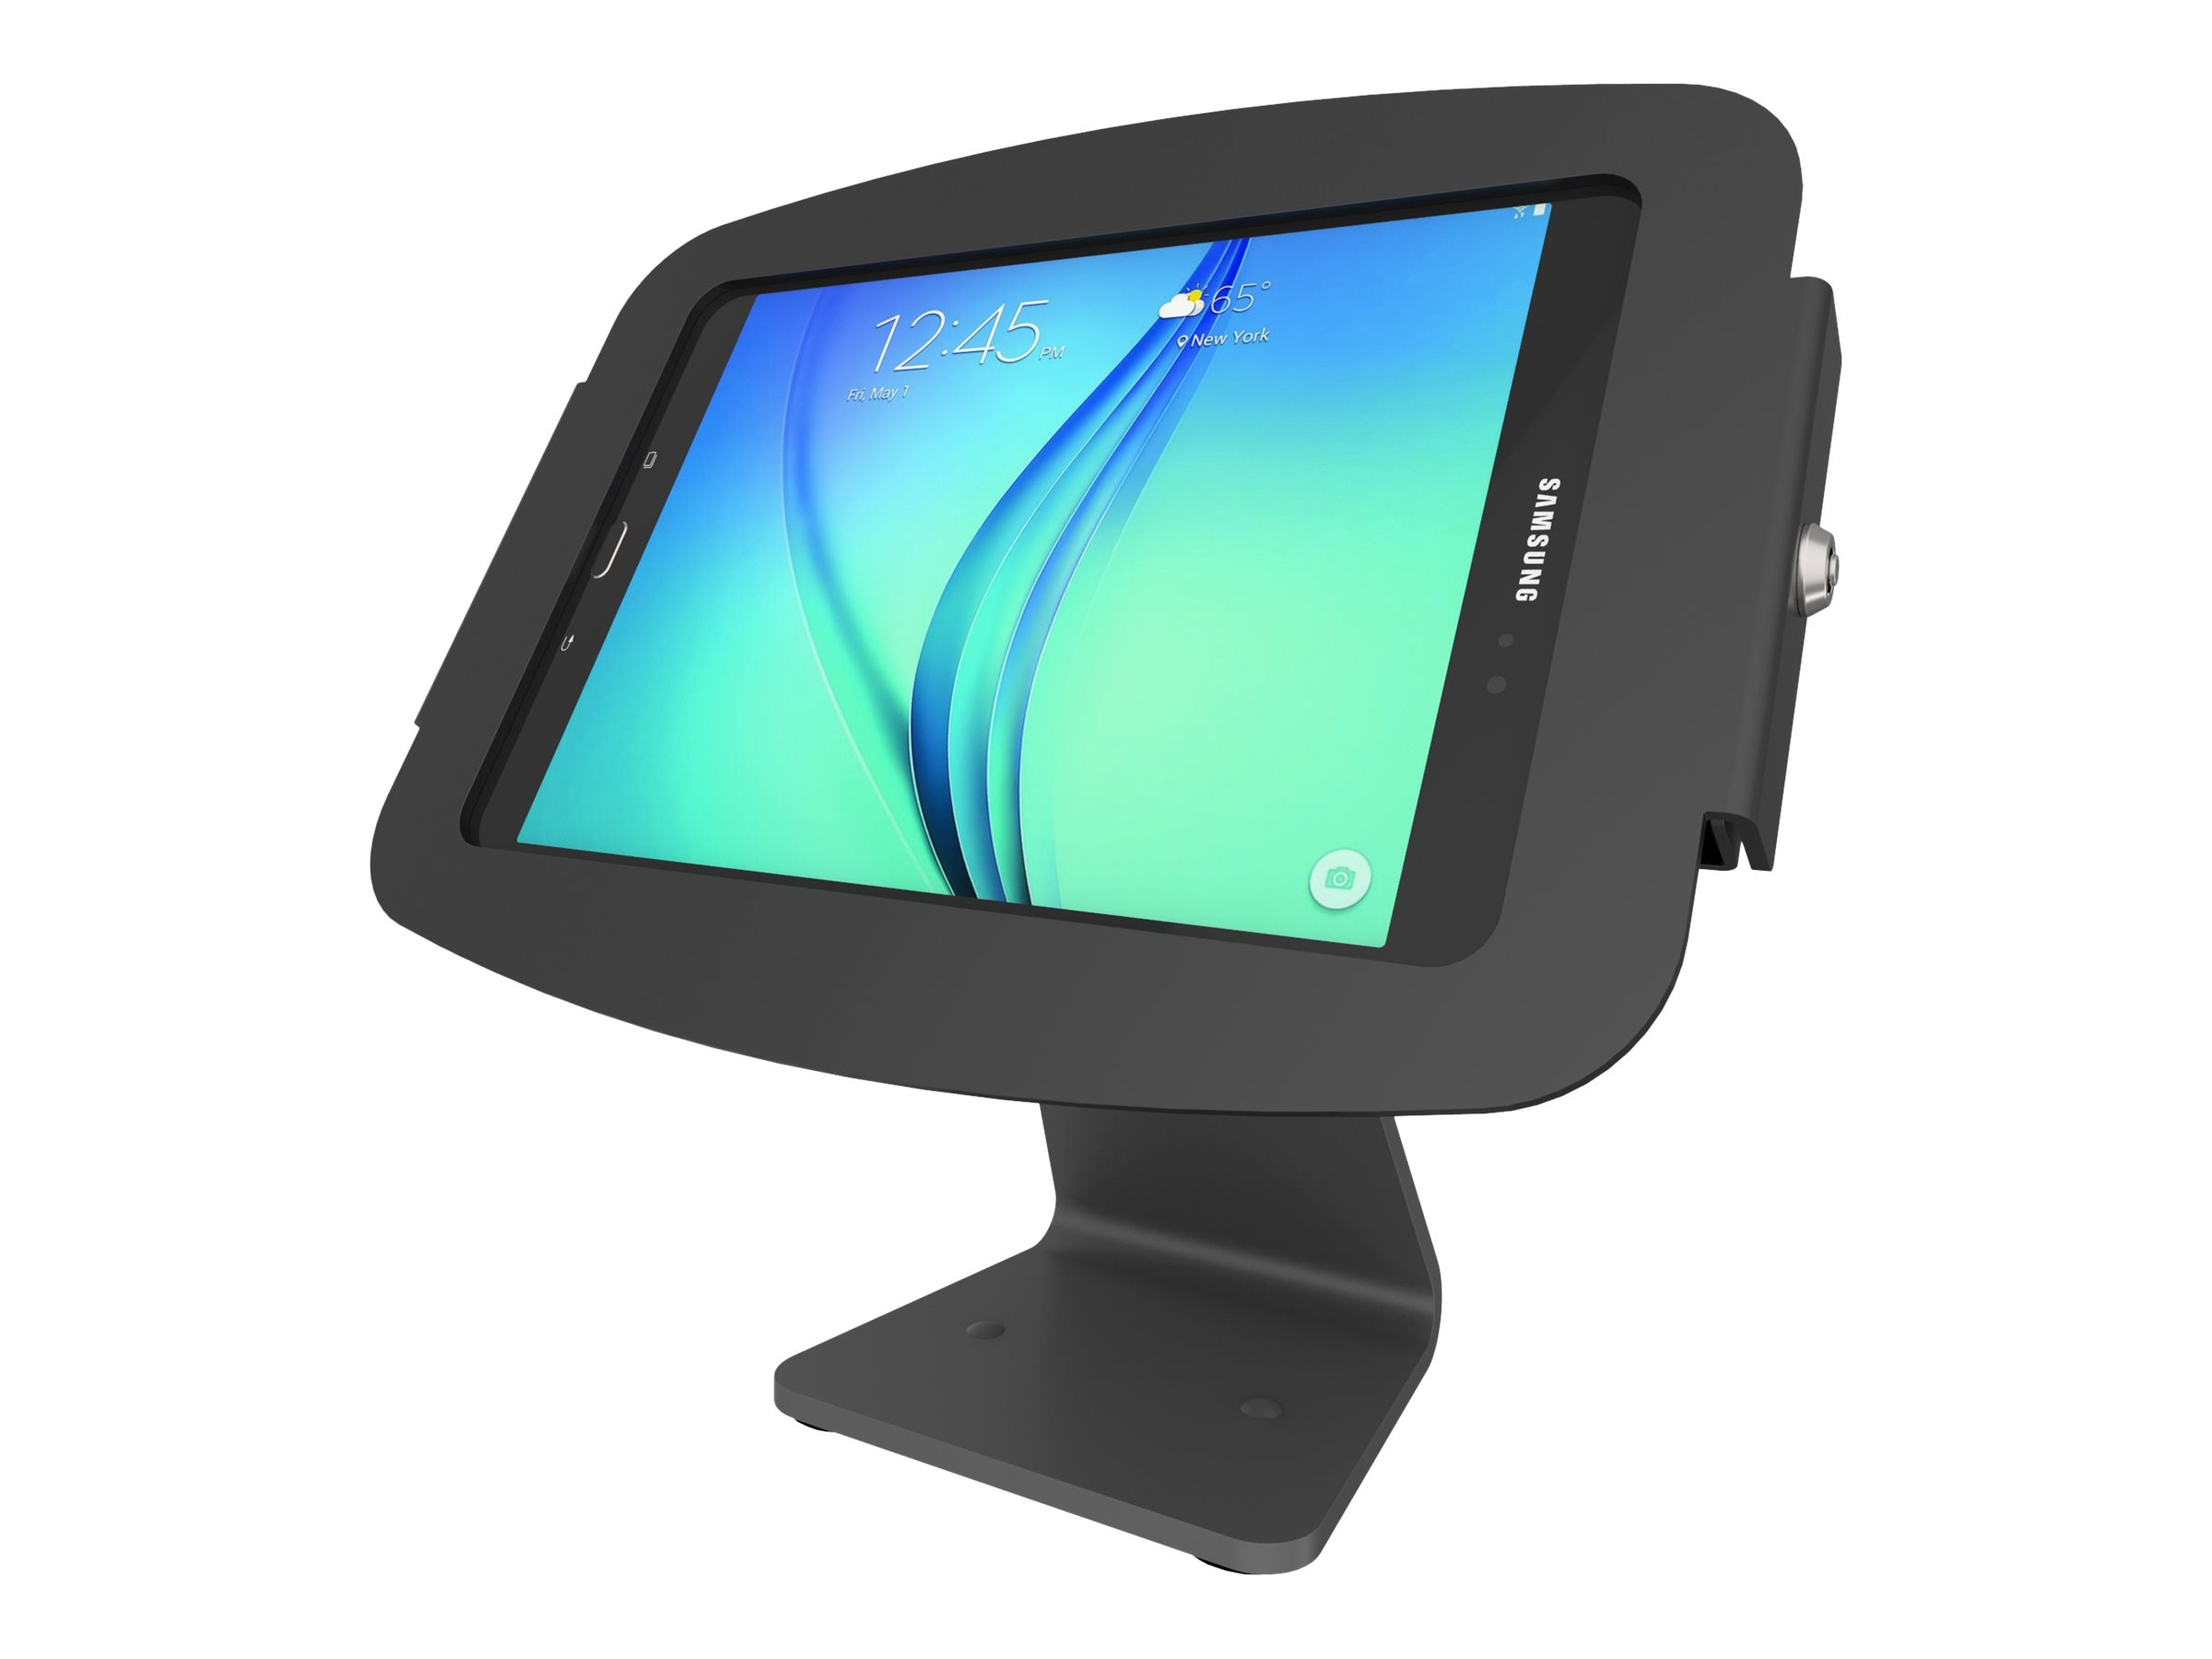 Compulocks Space Enclosure 360 Kiosk for Galaxy Tab A 9.7, 303B697AGEB